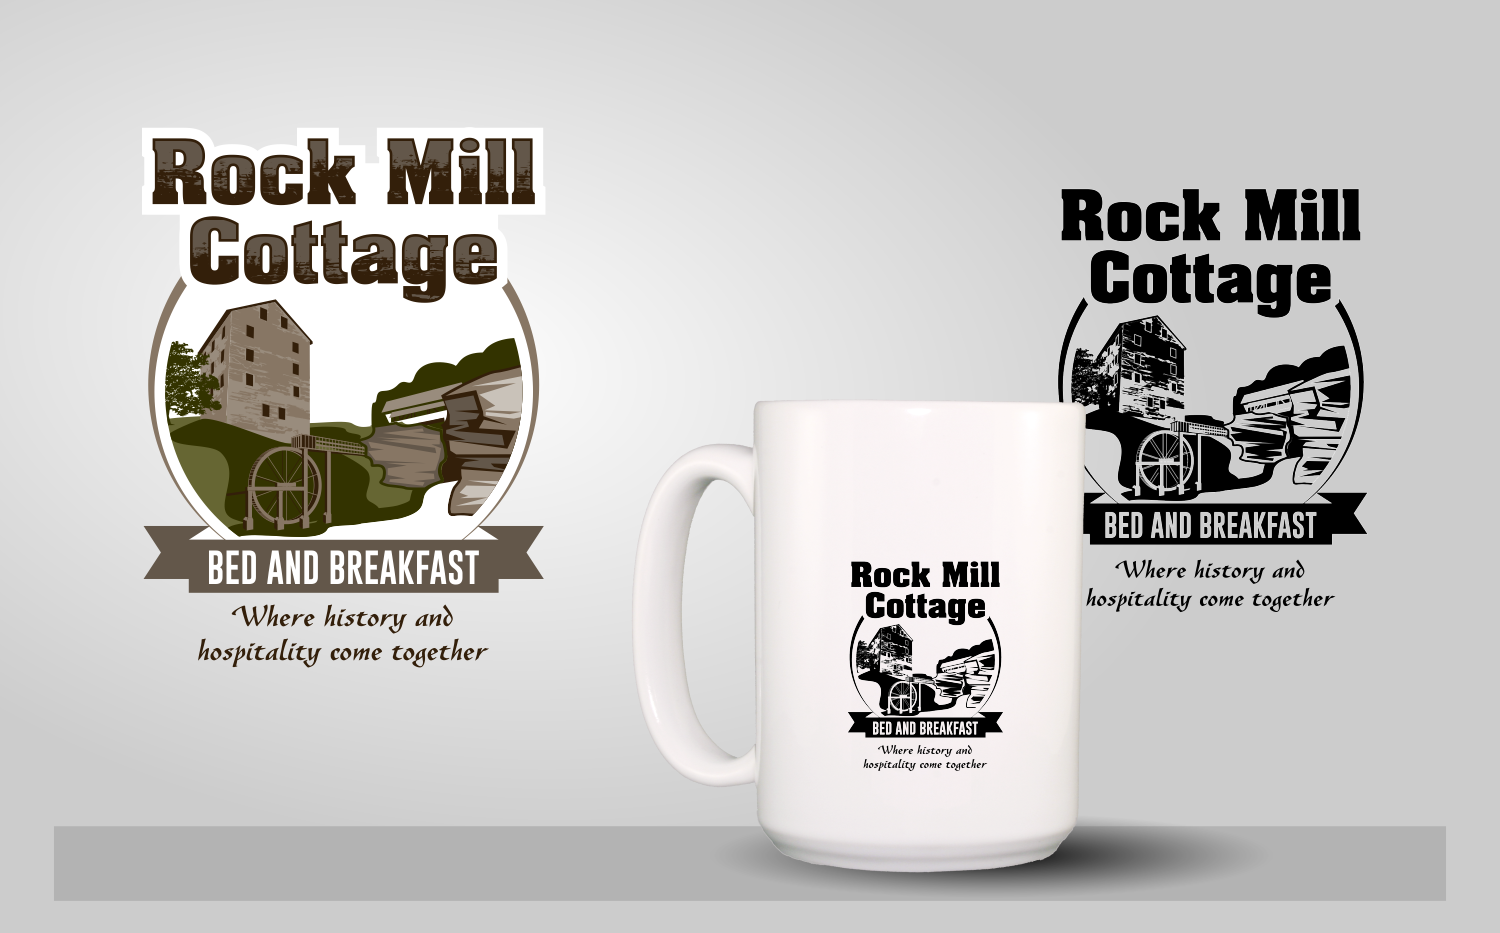 Page 4 - Rock Mill Cottage Bed and Breakfast by Jonnabrr